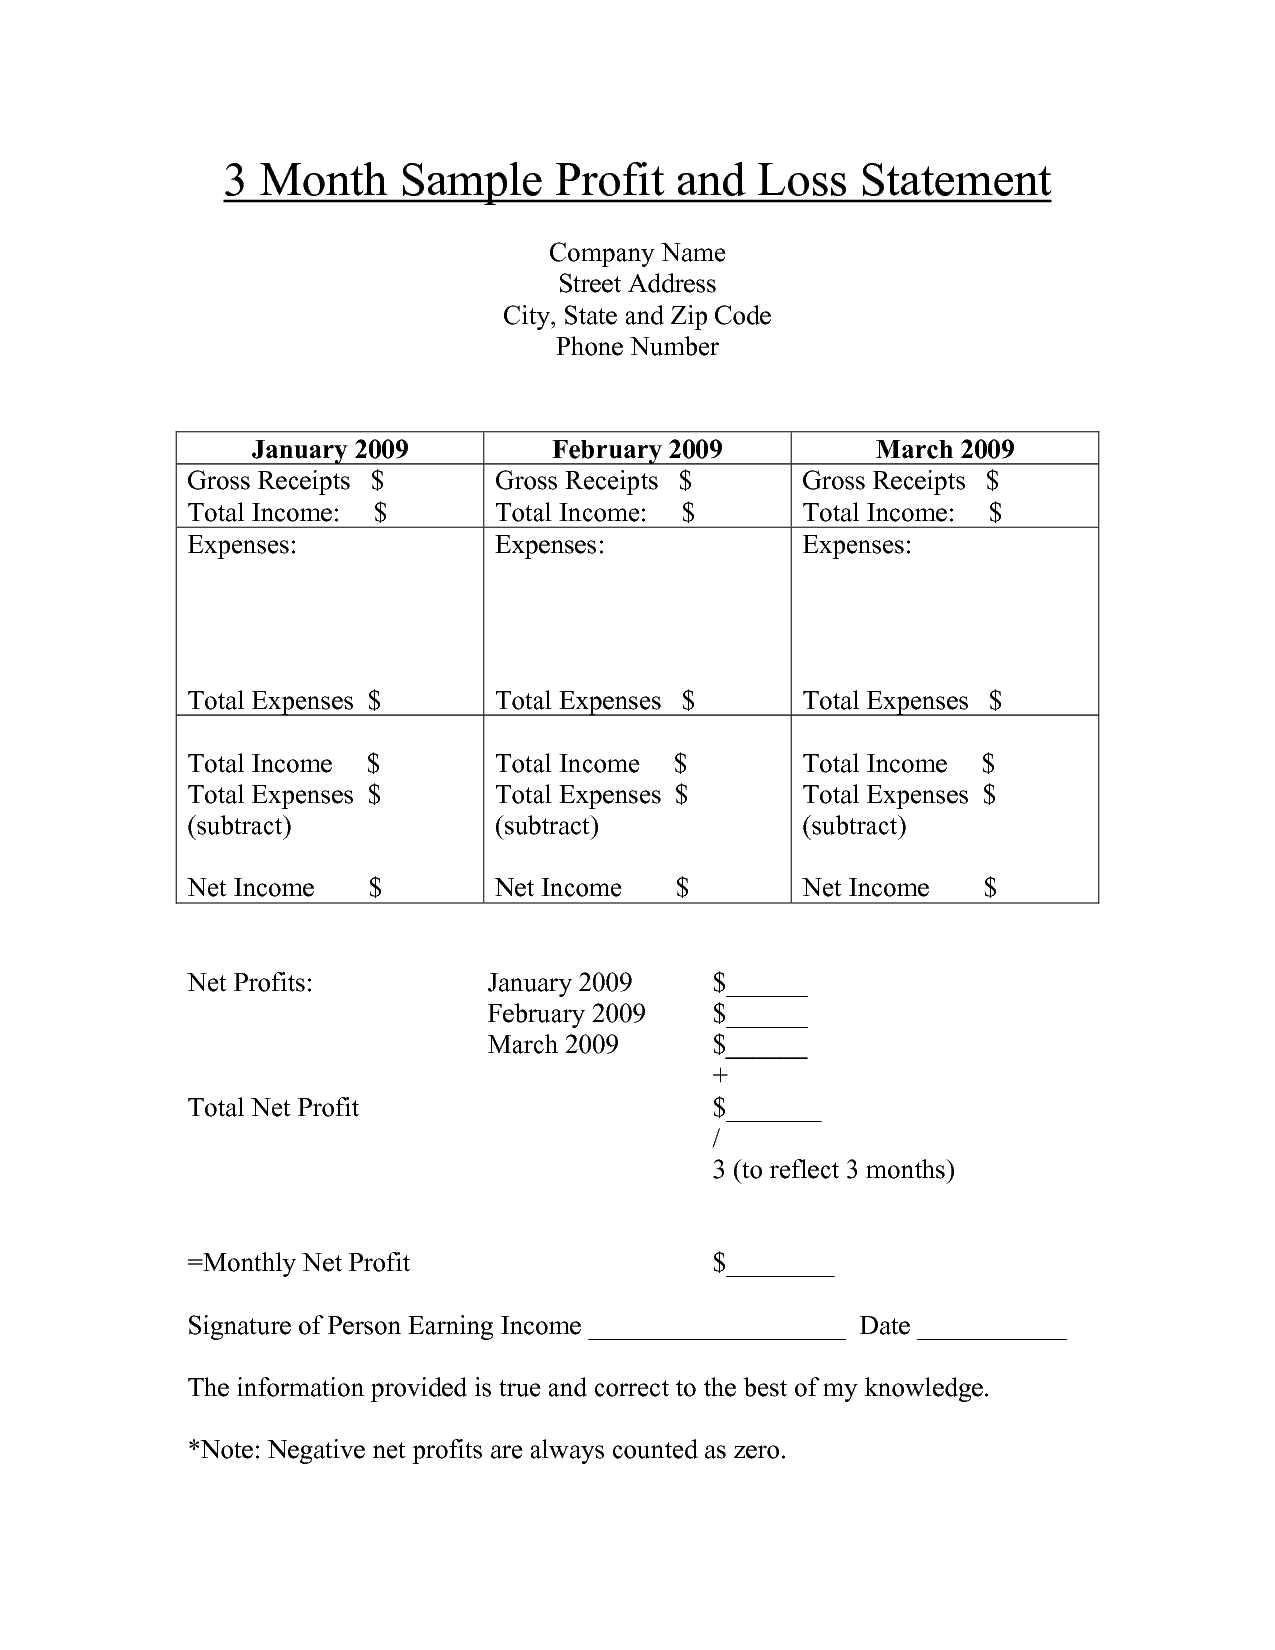 Profit and Loss Worksheet together with Free Printable Profit and Loss Statement form for Home Care Bing